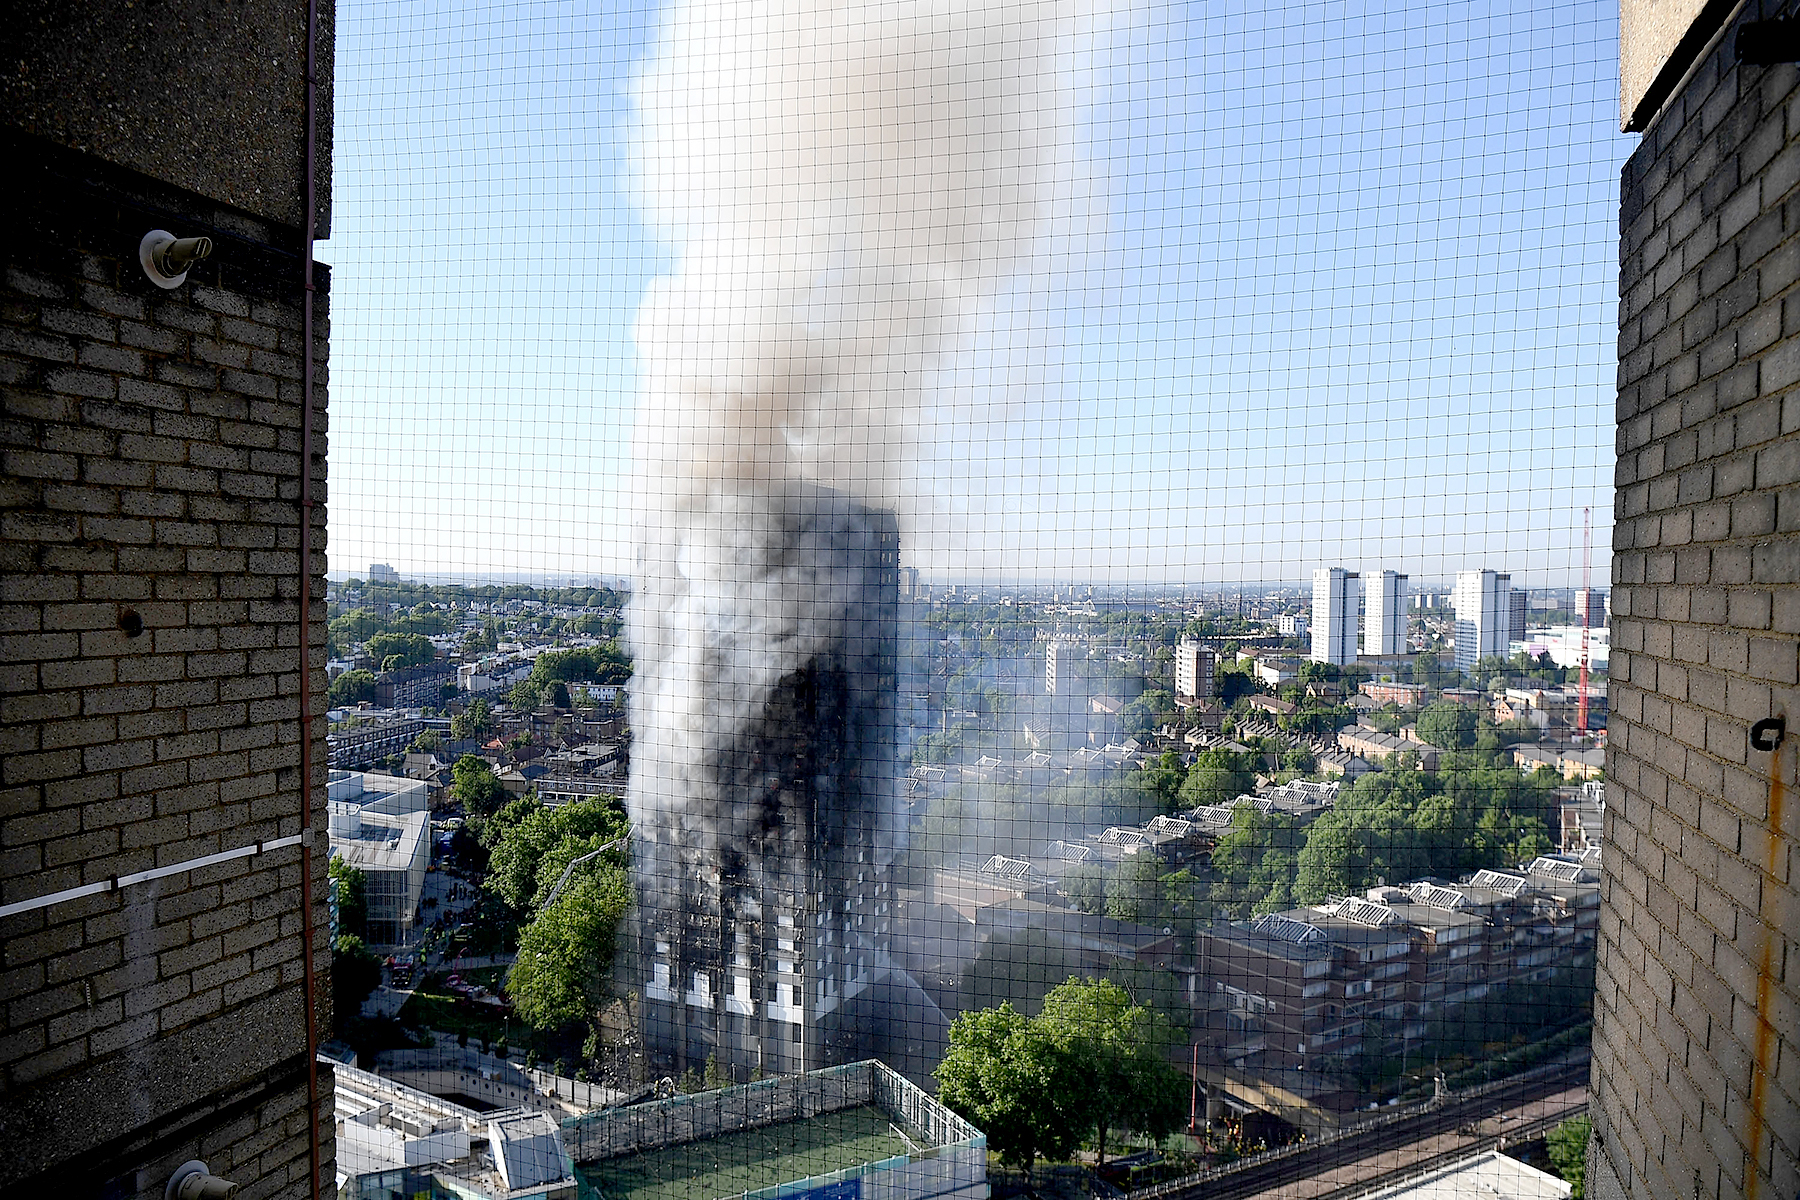 Smoke rises from the building after a huge fire engulfed the 24 storey residential Grenfell Tower block in Latimer Road, West London in the early hours of this morning on June 14, 2017 in London, England.